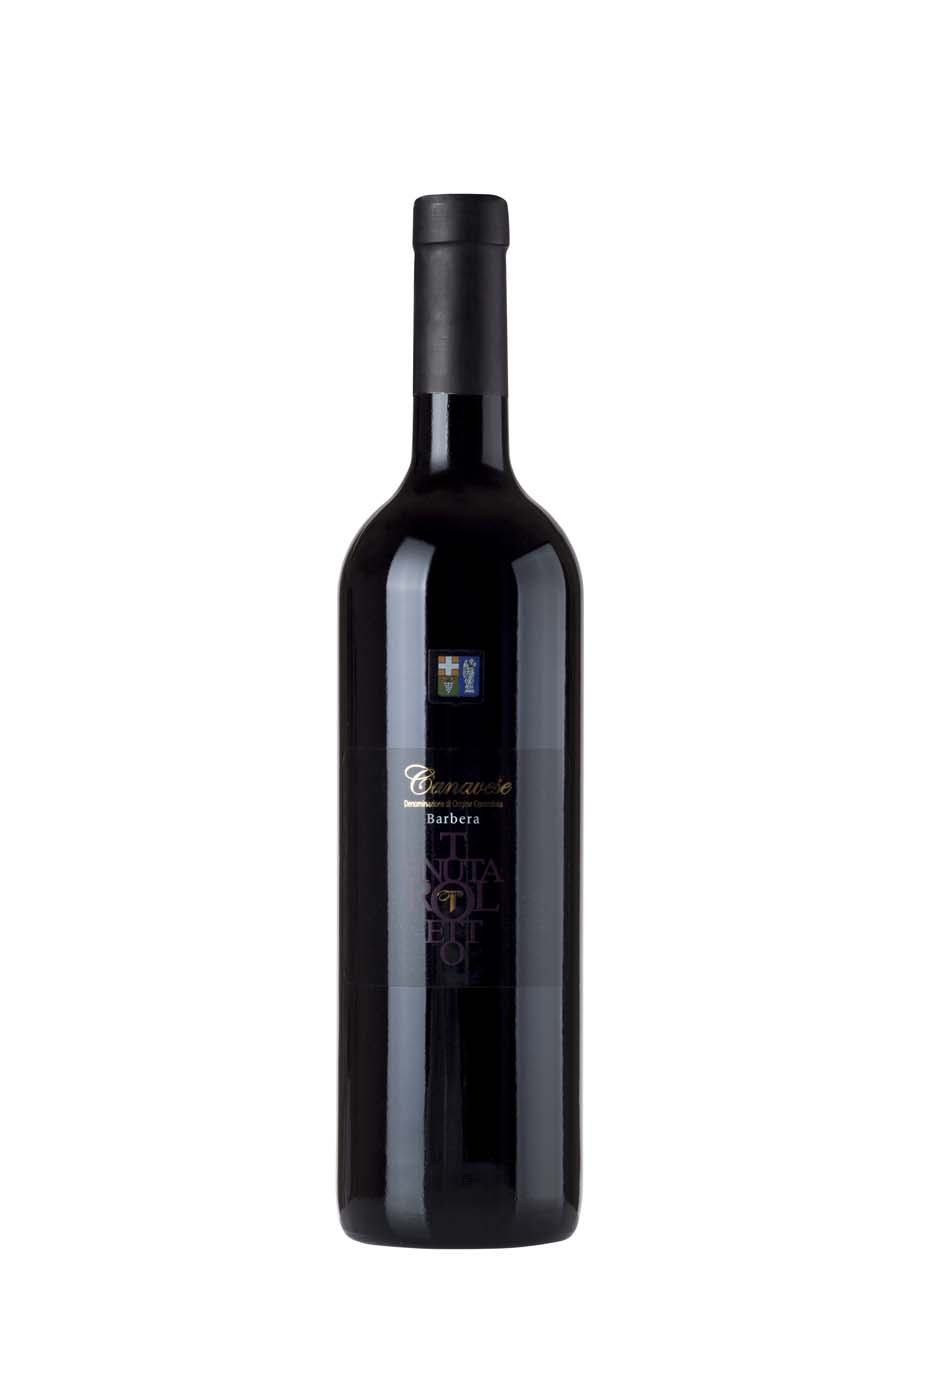 Canavese doc Barbera